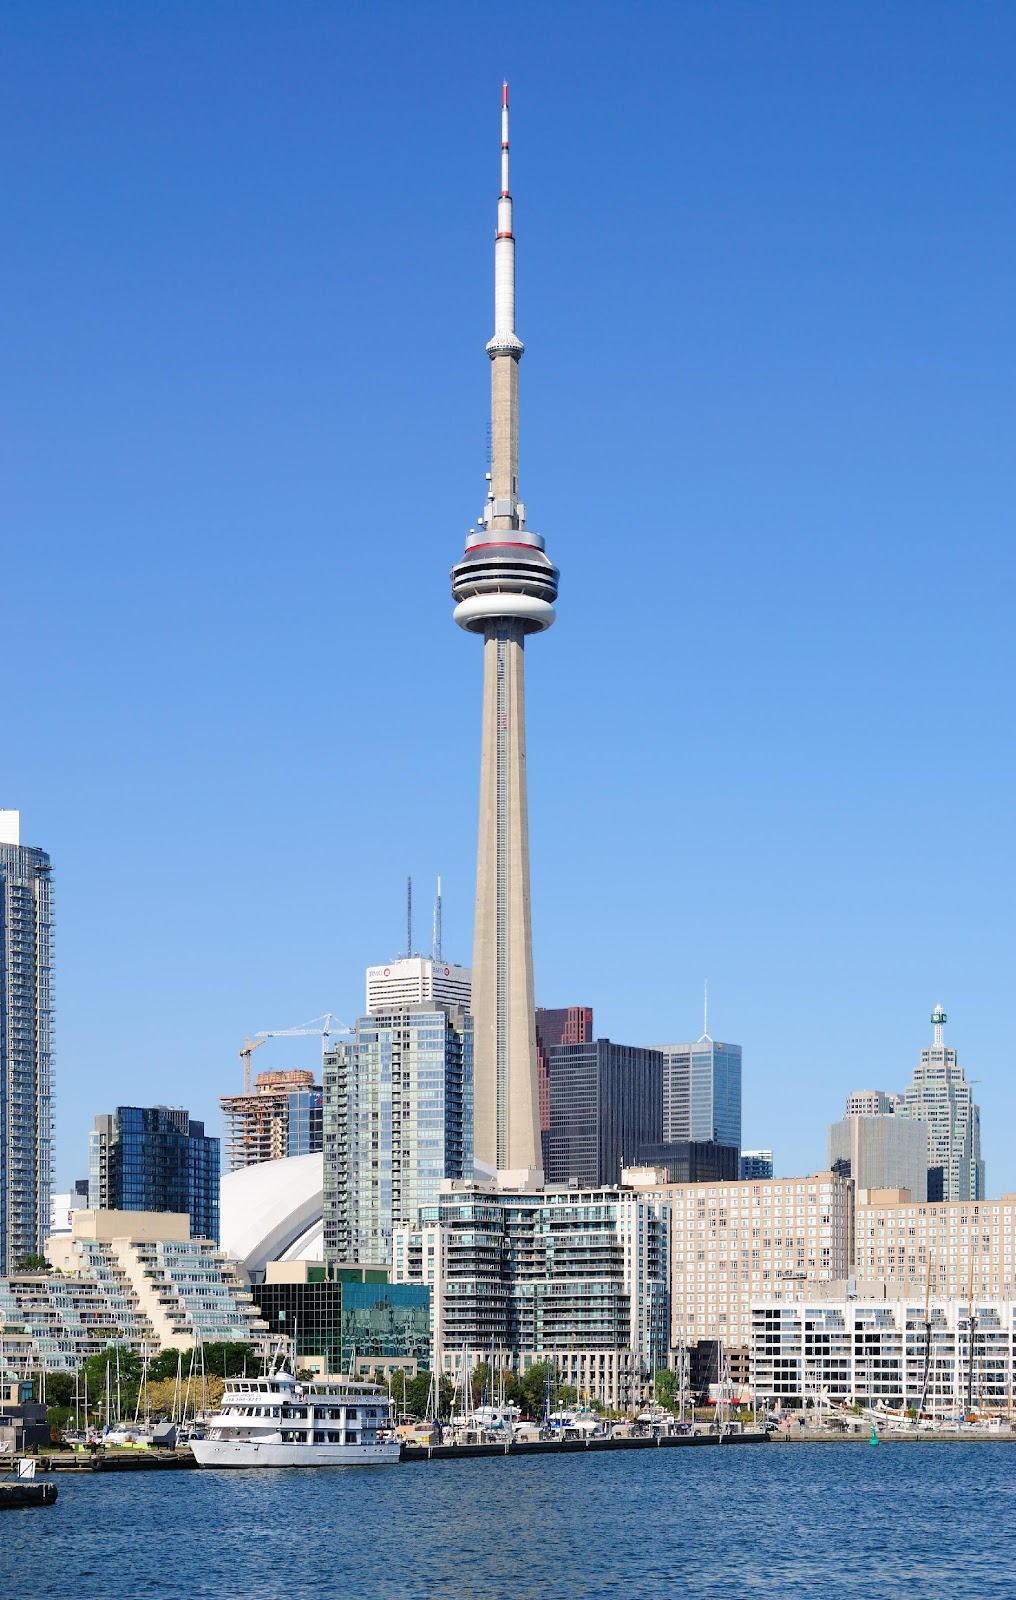 C:\Users\rwil313\Desktop\CN Tower.jpg